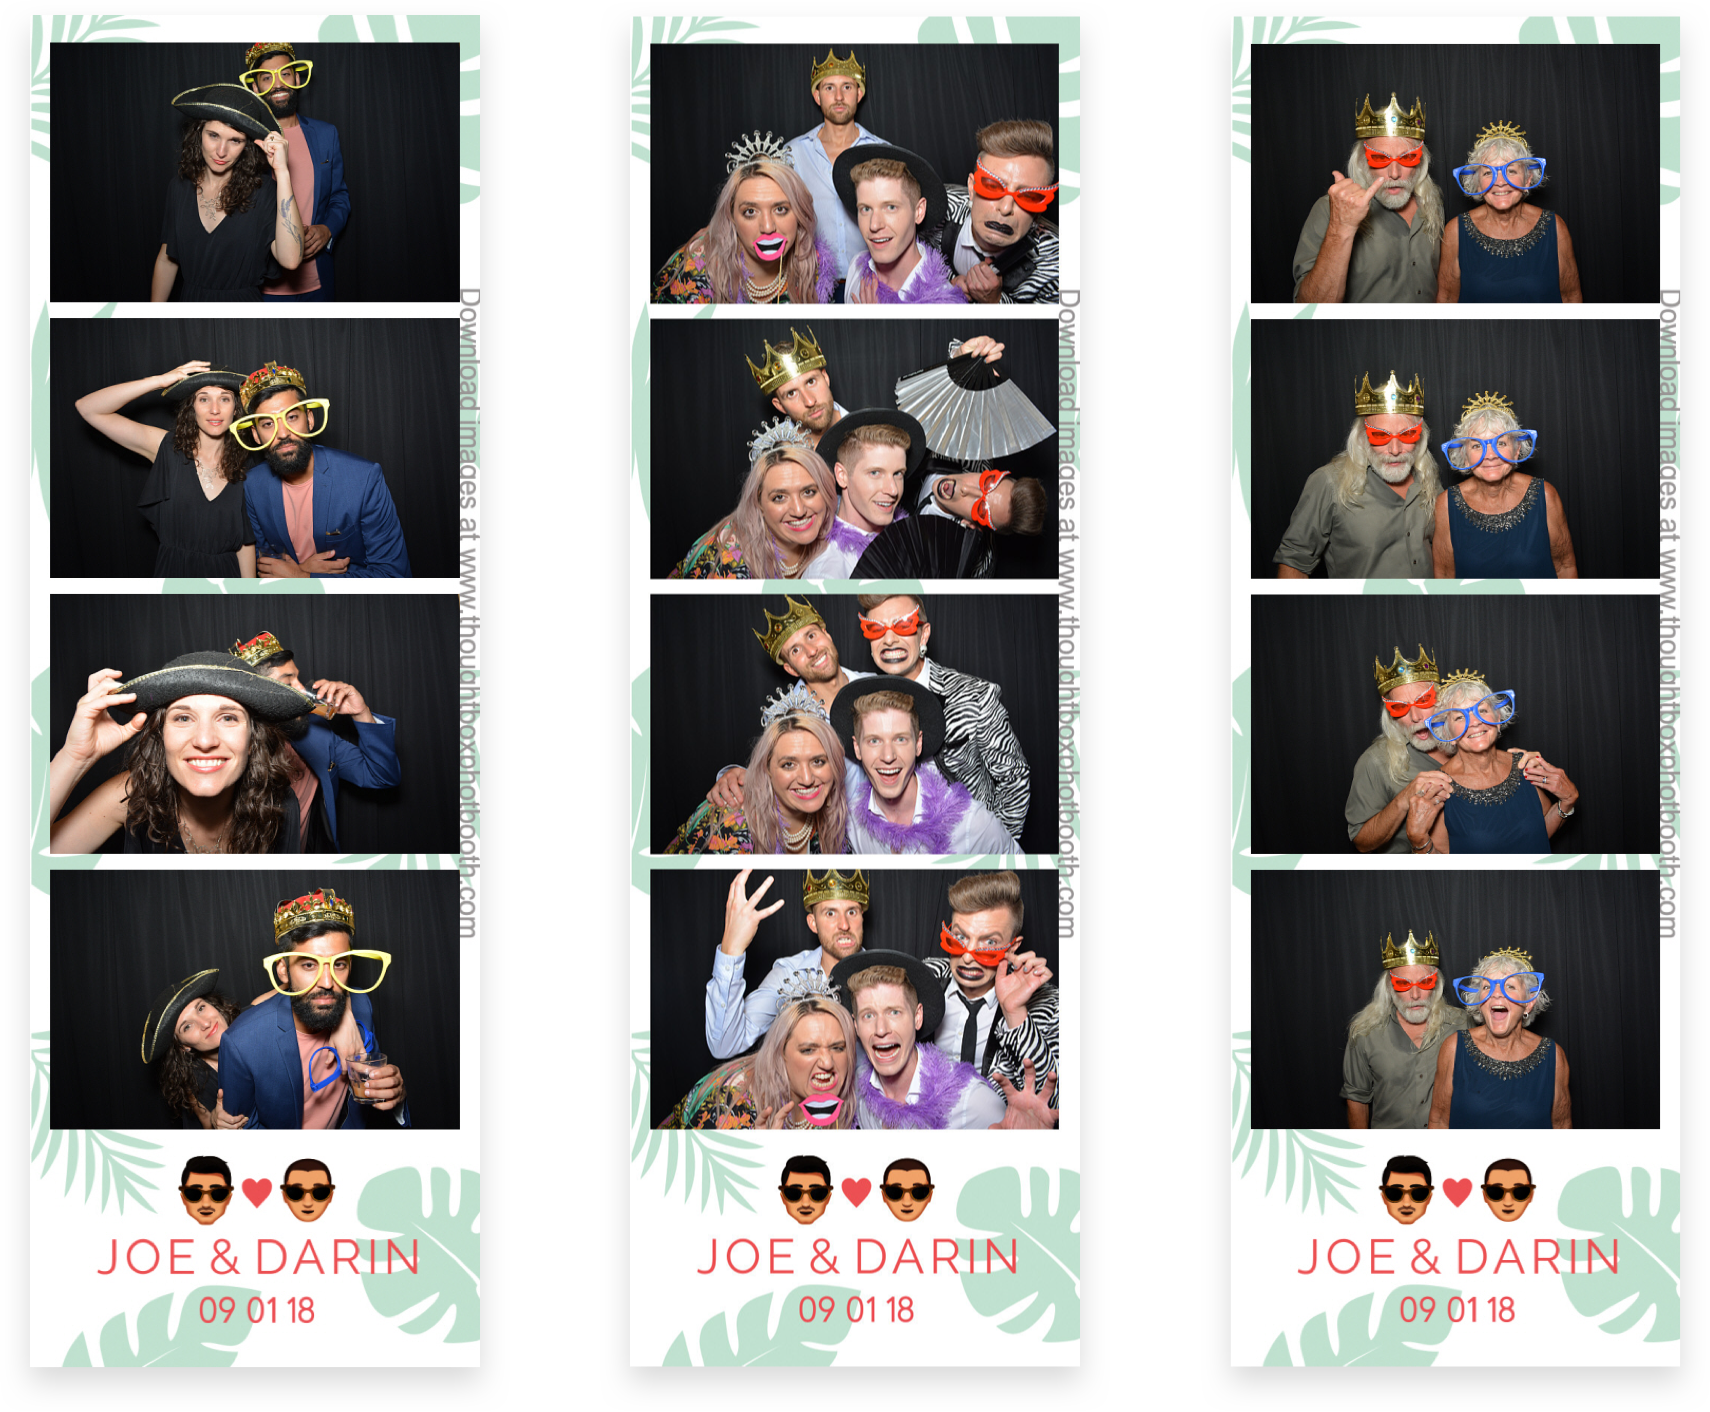 Three photo strips of silly people featuring the wedding design applied